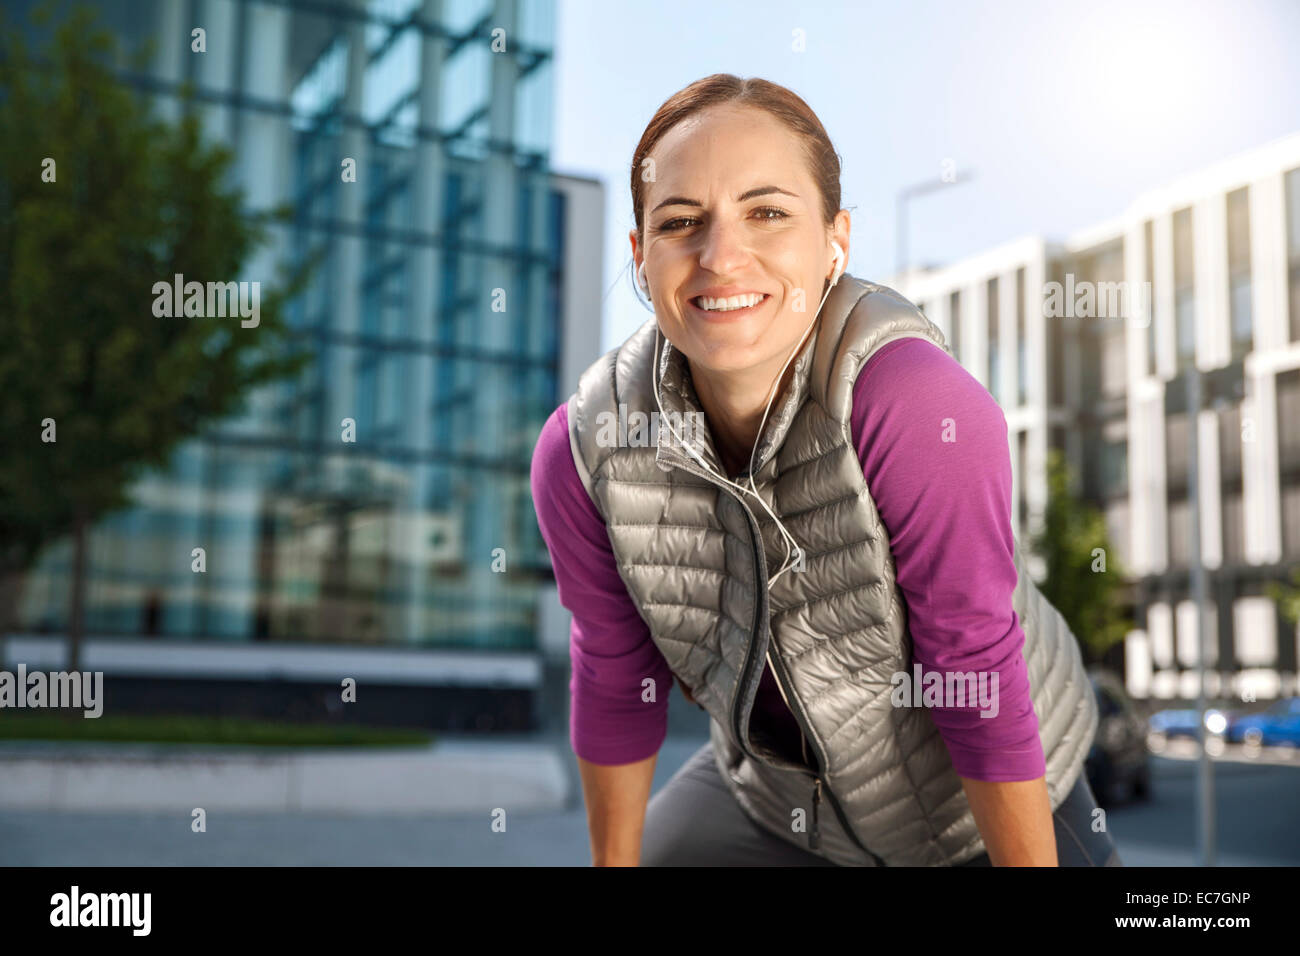 Smiling athletic woman outdoors - Stock Image